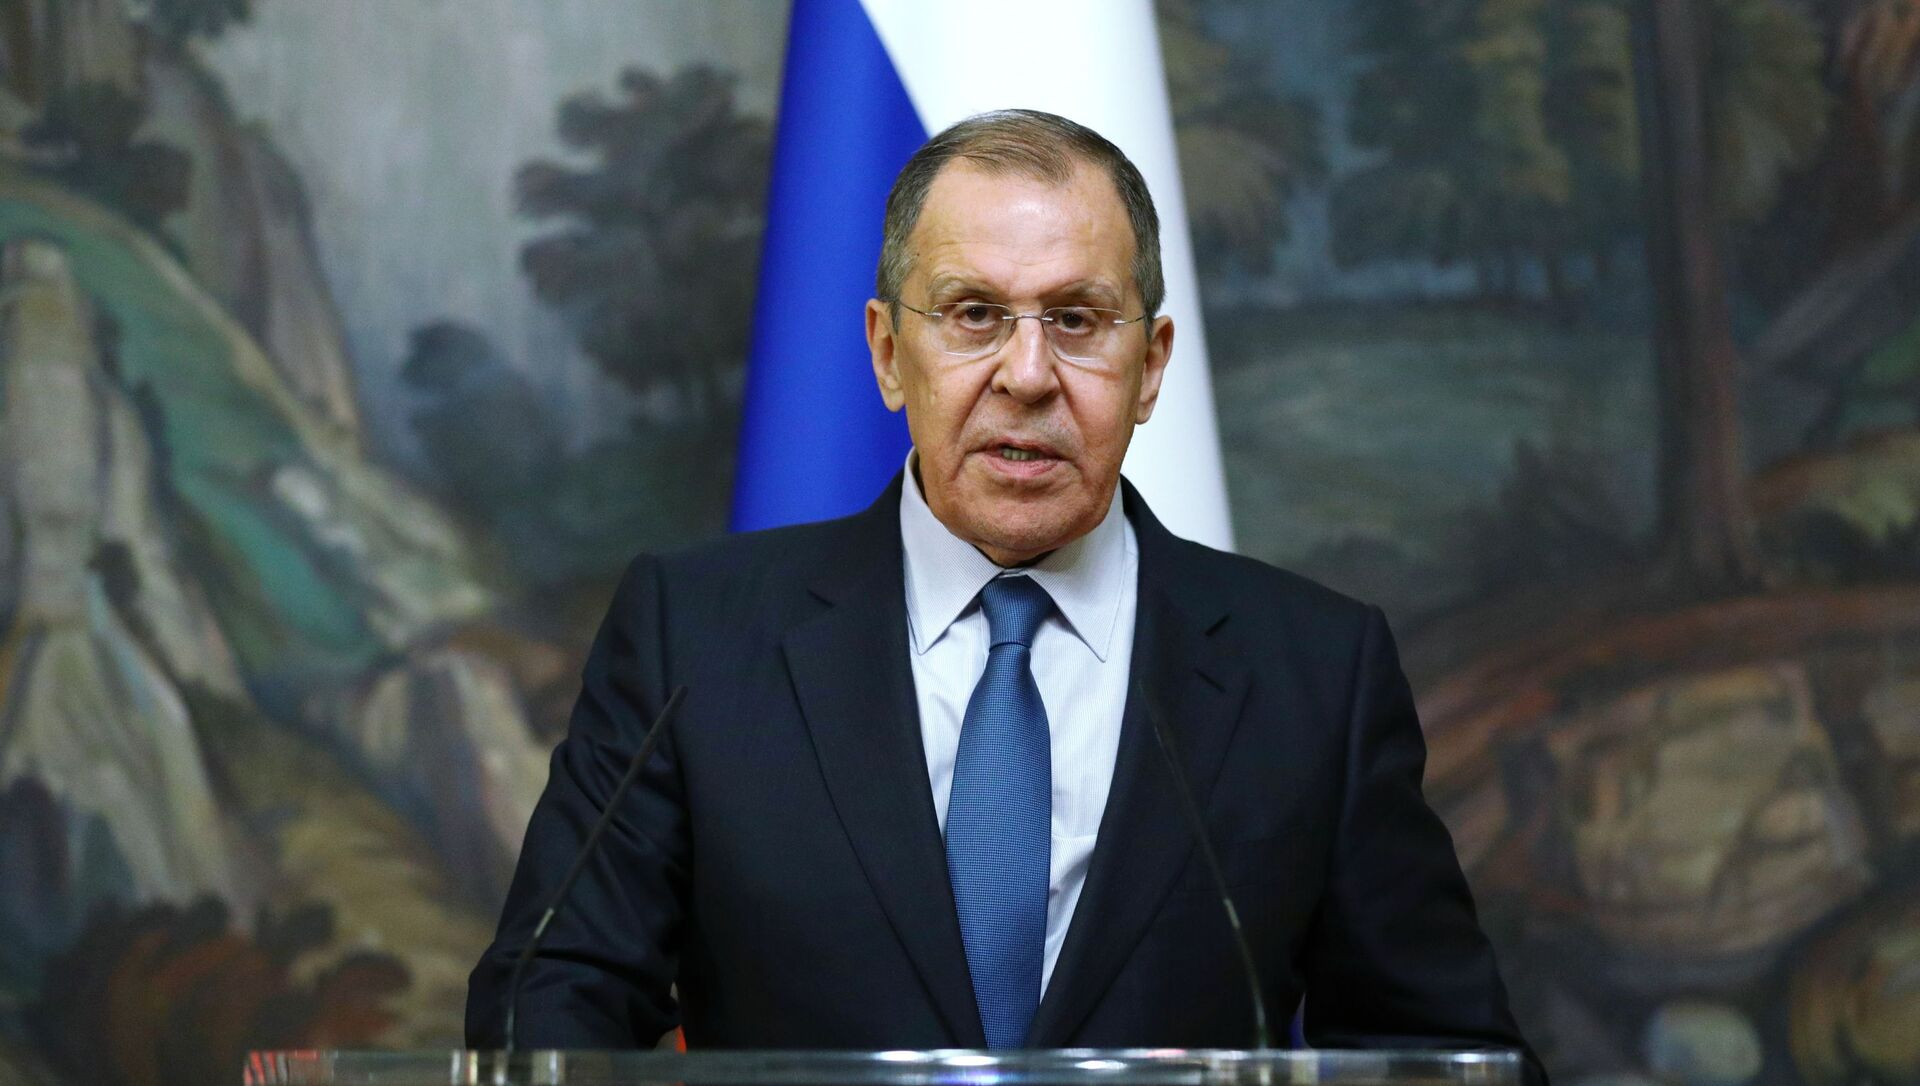 Russian Foreign Minister Sergey Lavrov delivers a joint statement after trilateral talks between Russia, Armenia and Azerbaijan over Nagorno-Karabakh ceasefire, 10 October 2020 - Sputnik Italia, 1920, 27.04.2021